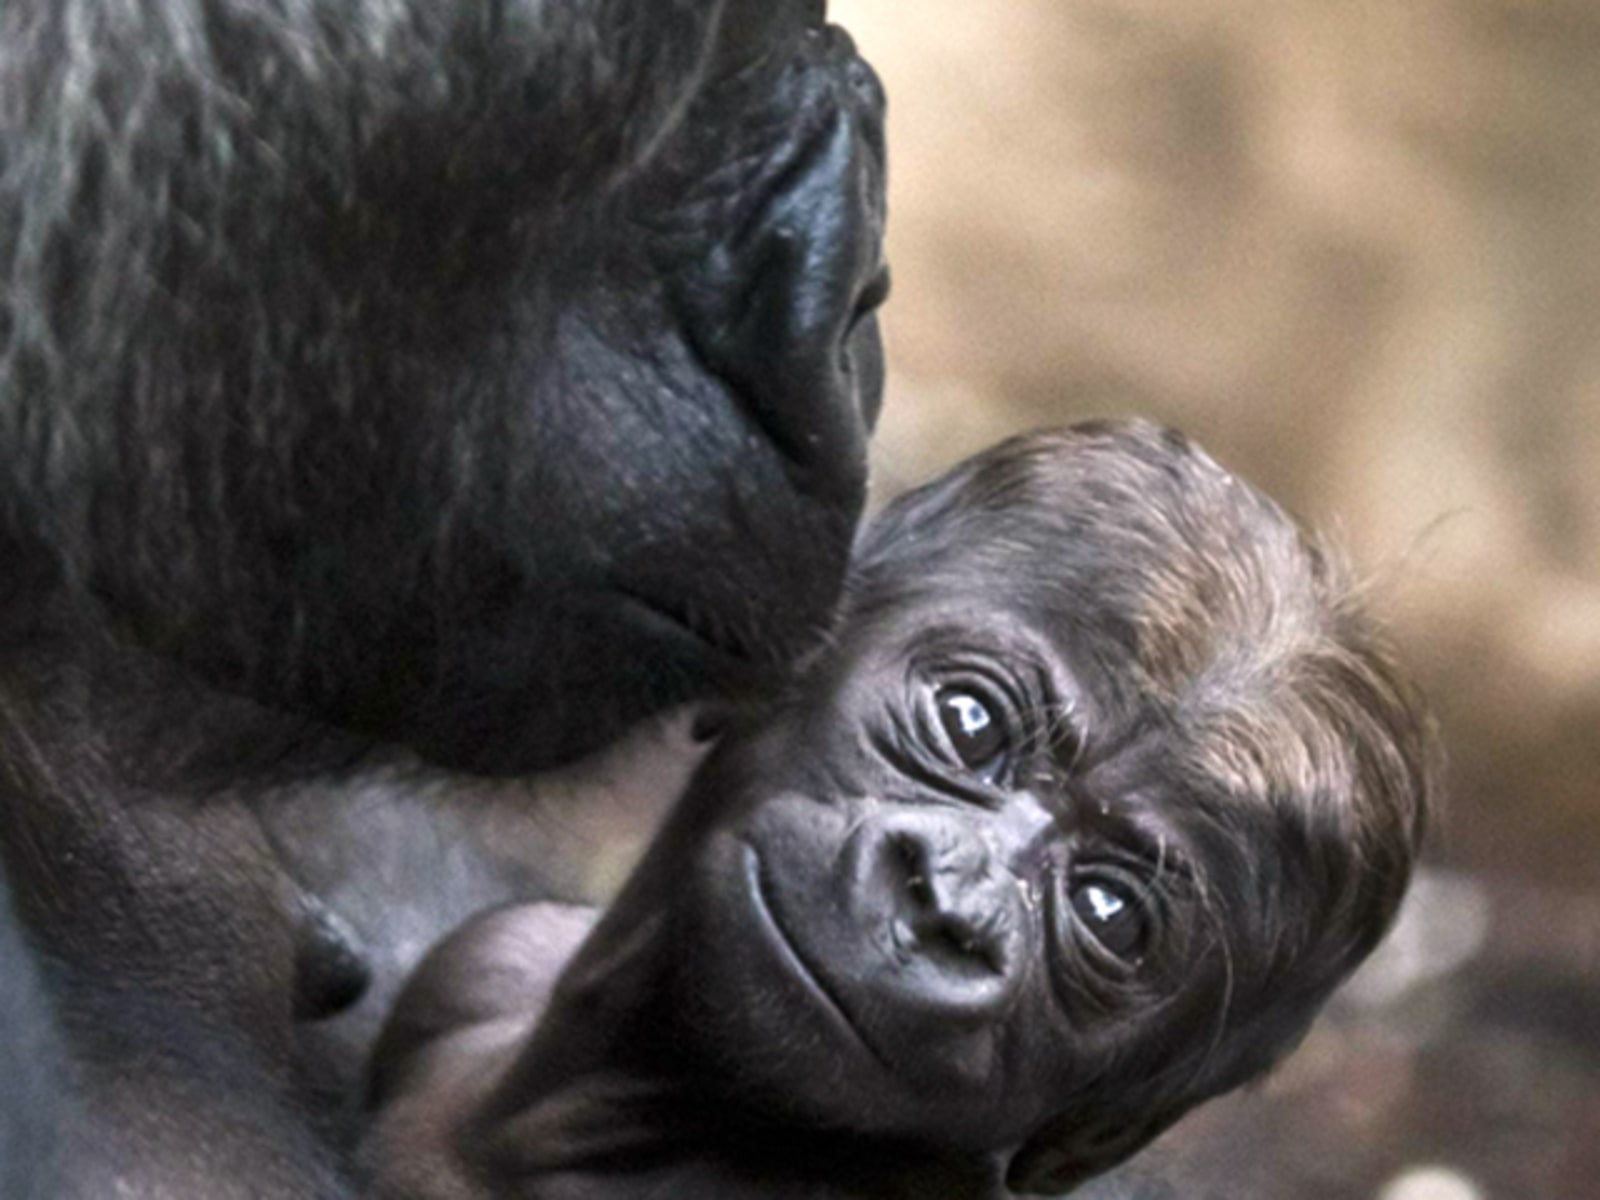 Image: Gorilla mother Dian holds her baby Quemb